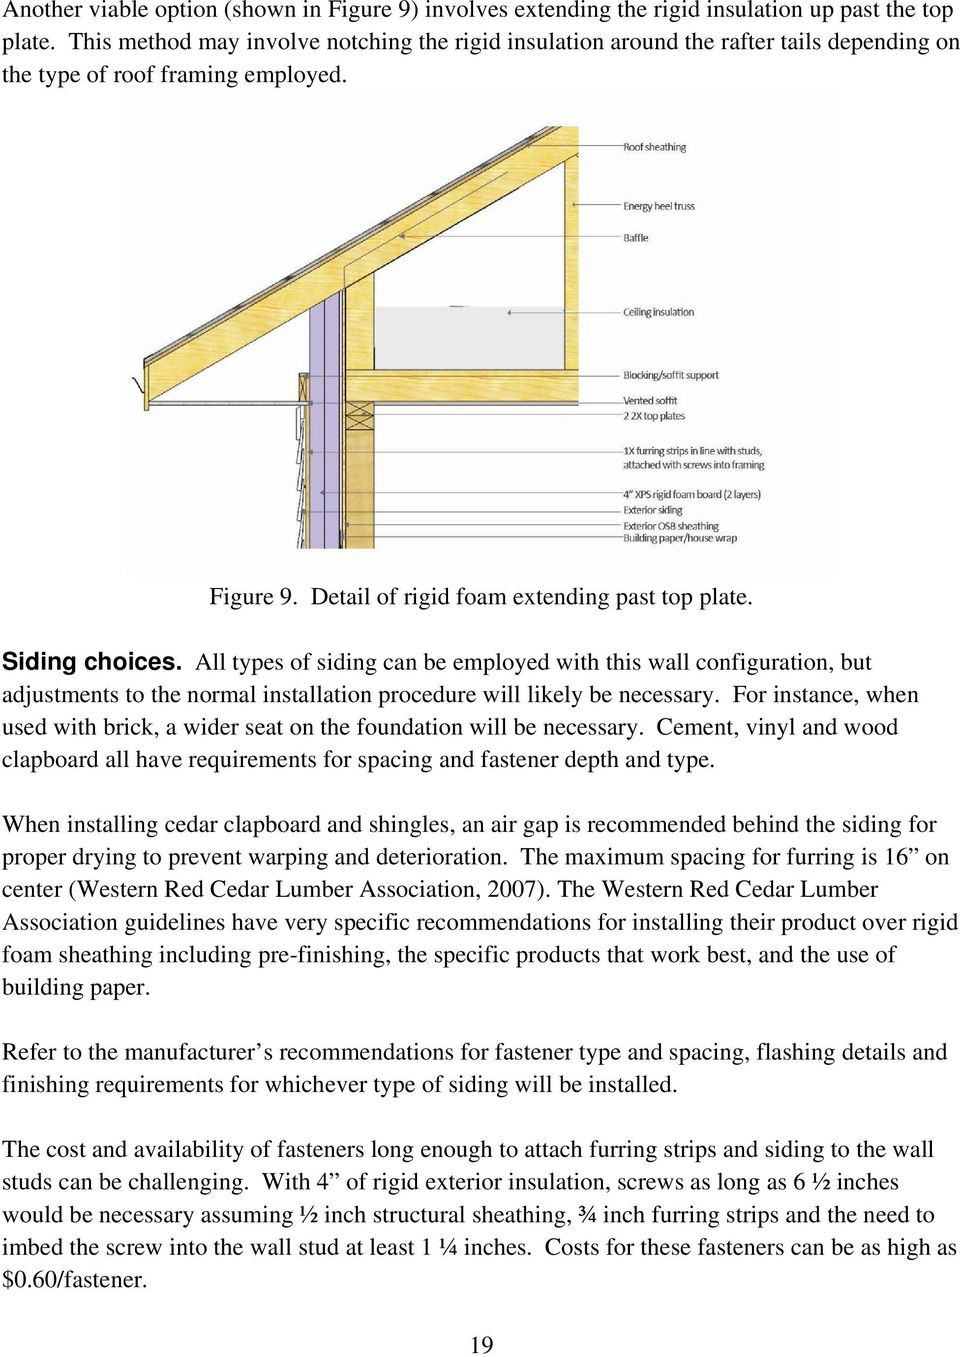 Rigid Insulation Types Practical Residential Wall Systems R 30 And Beyond Pdf